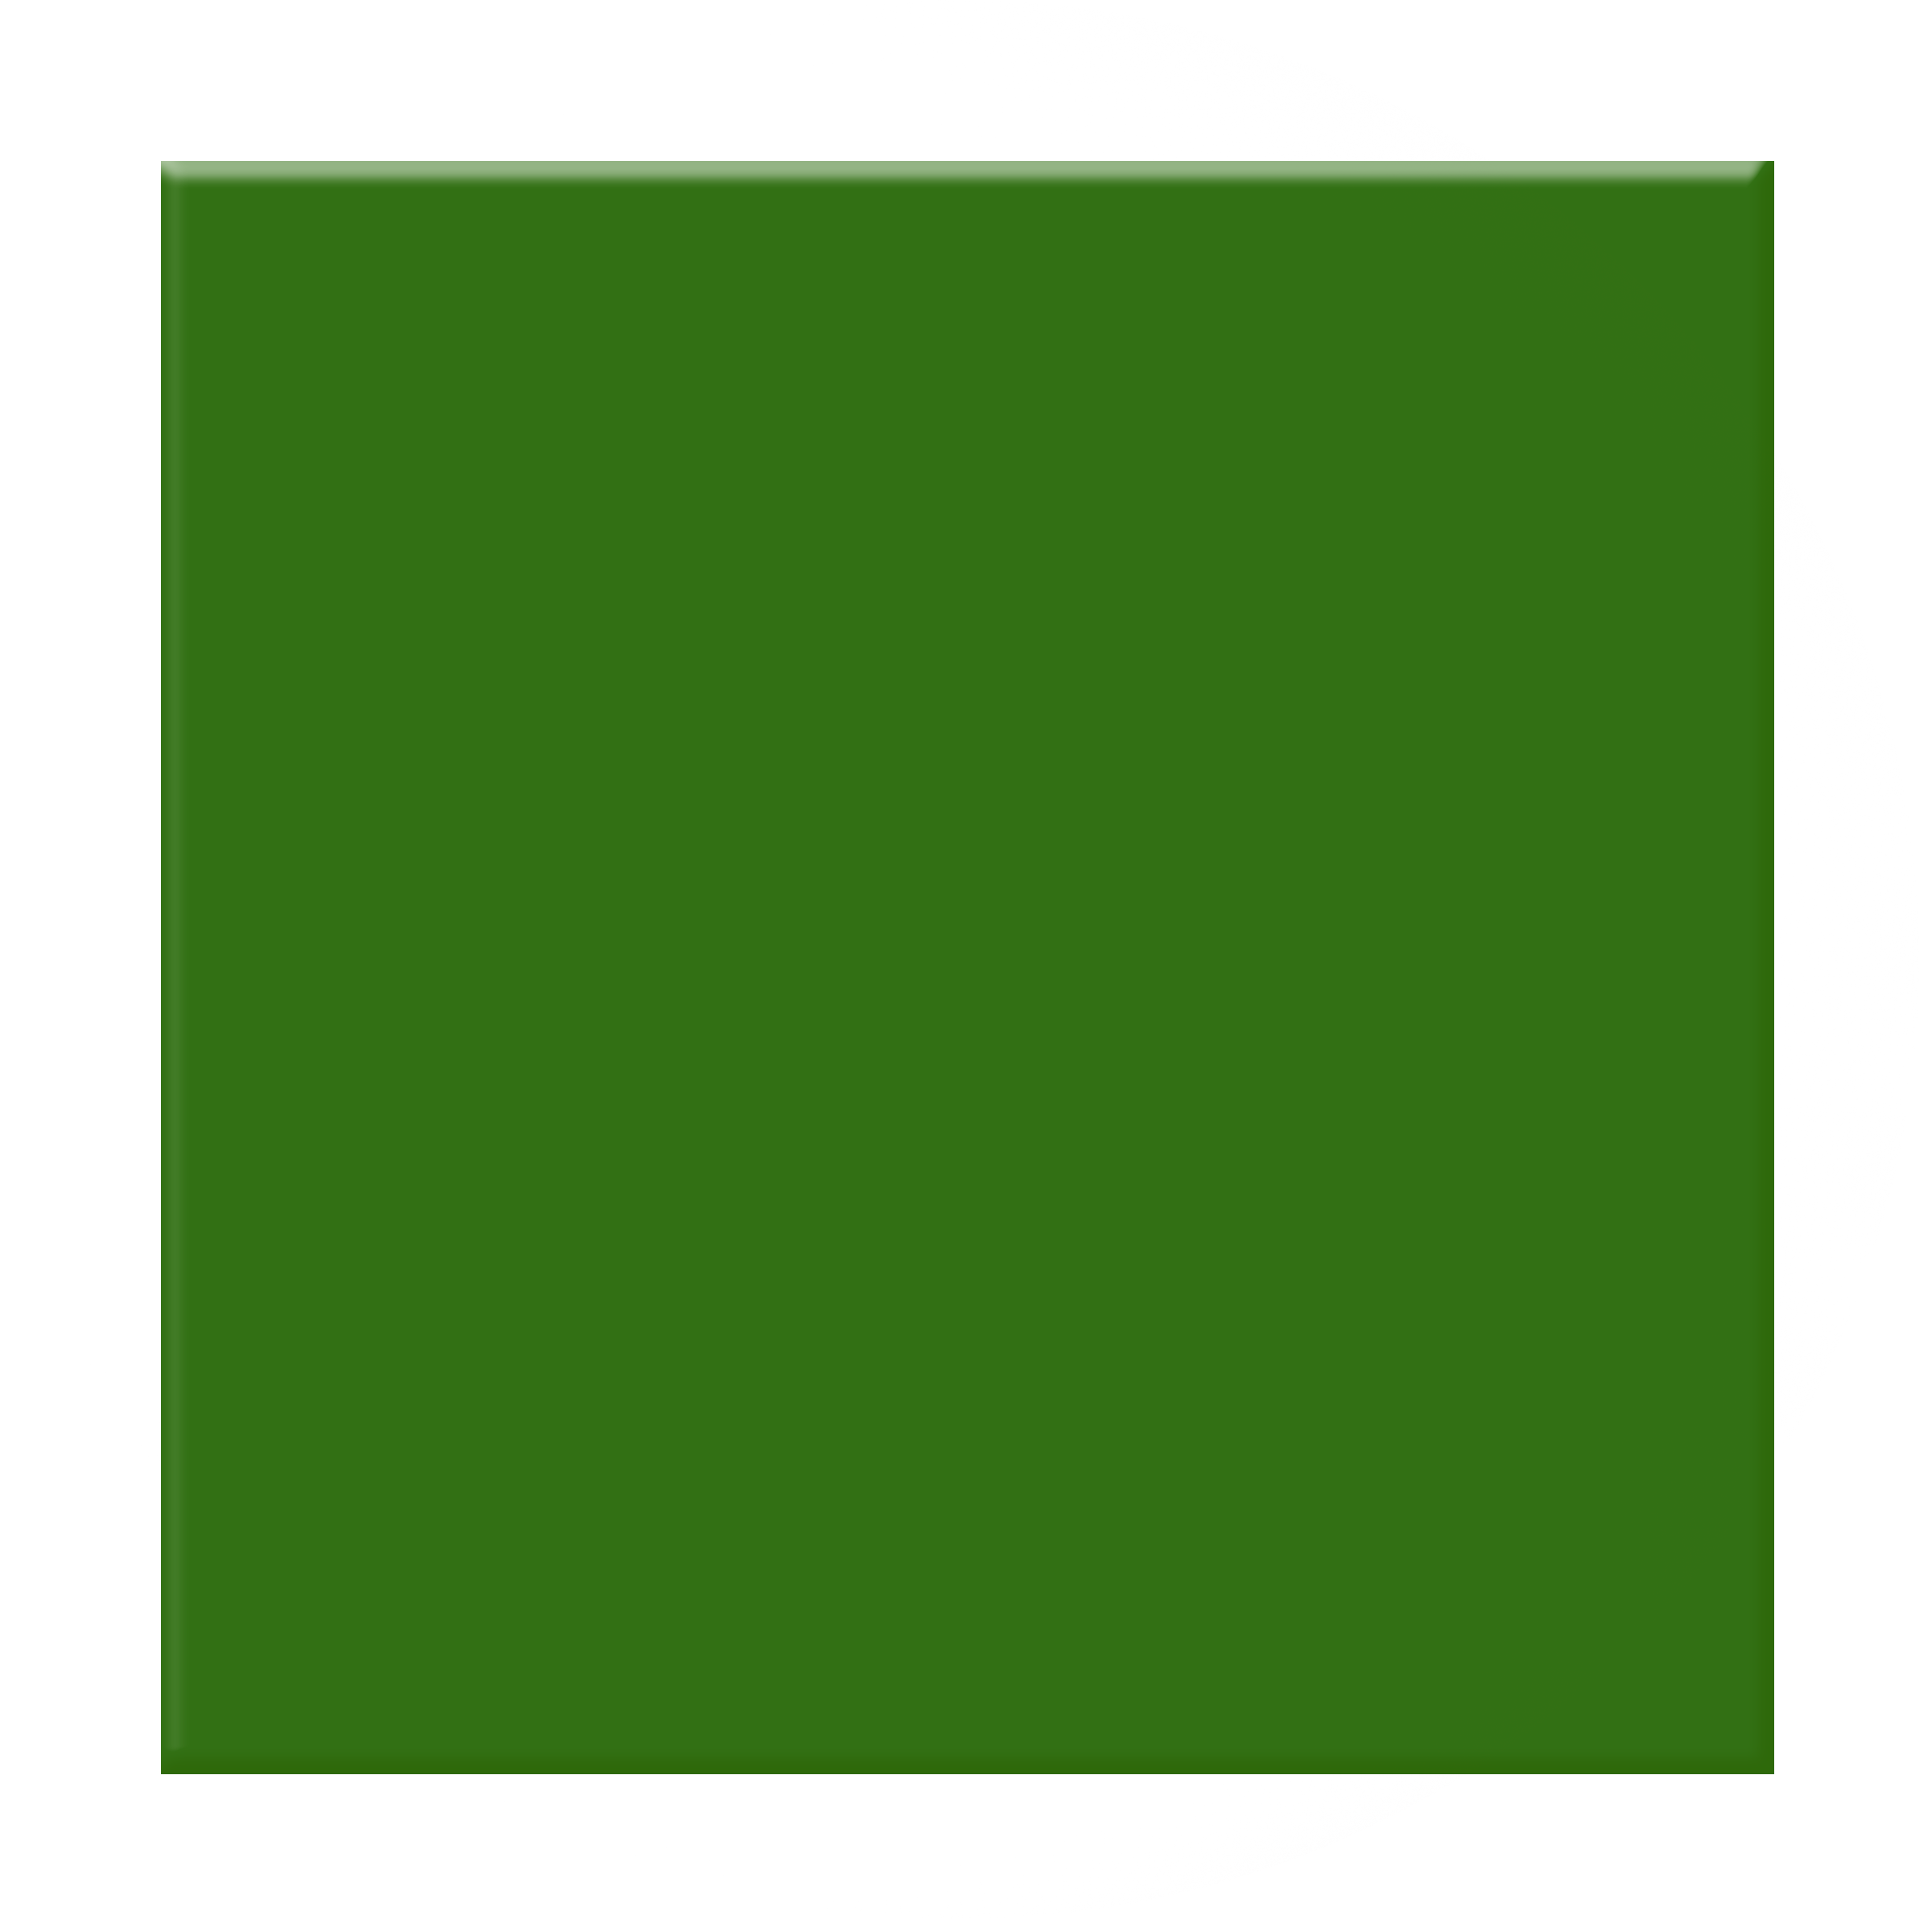 Green square png. Free icons and backgrounds